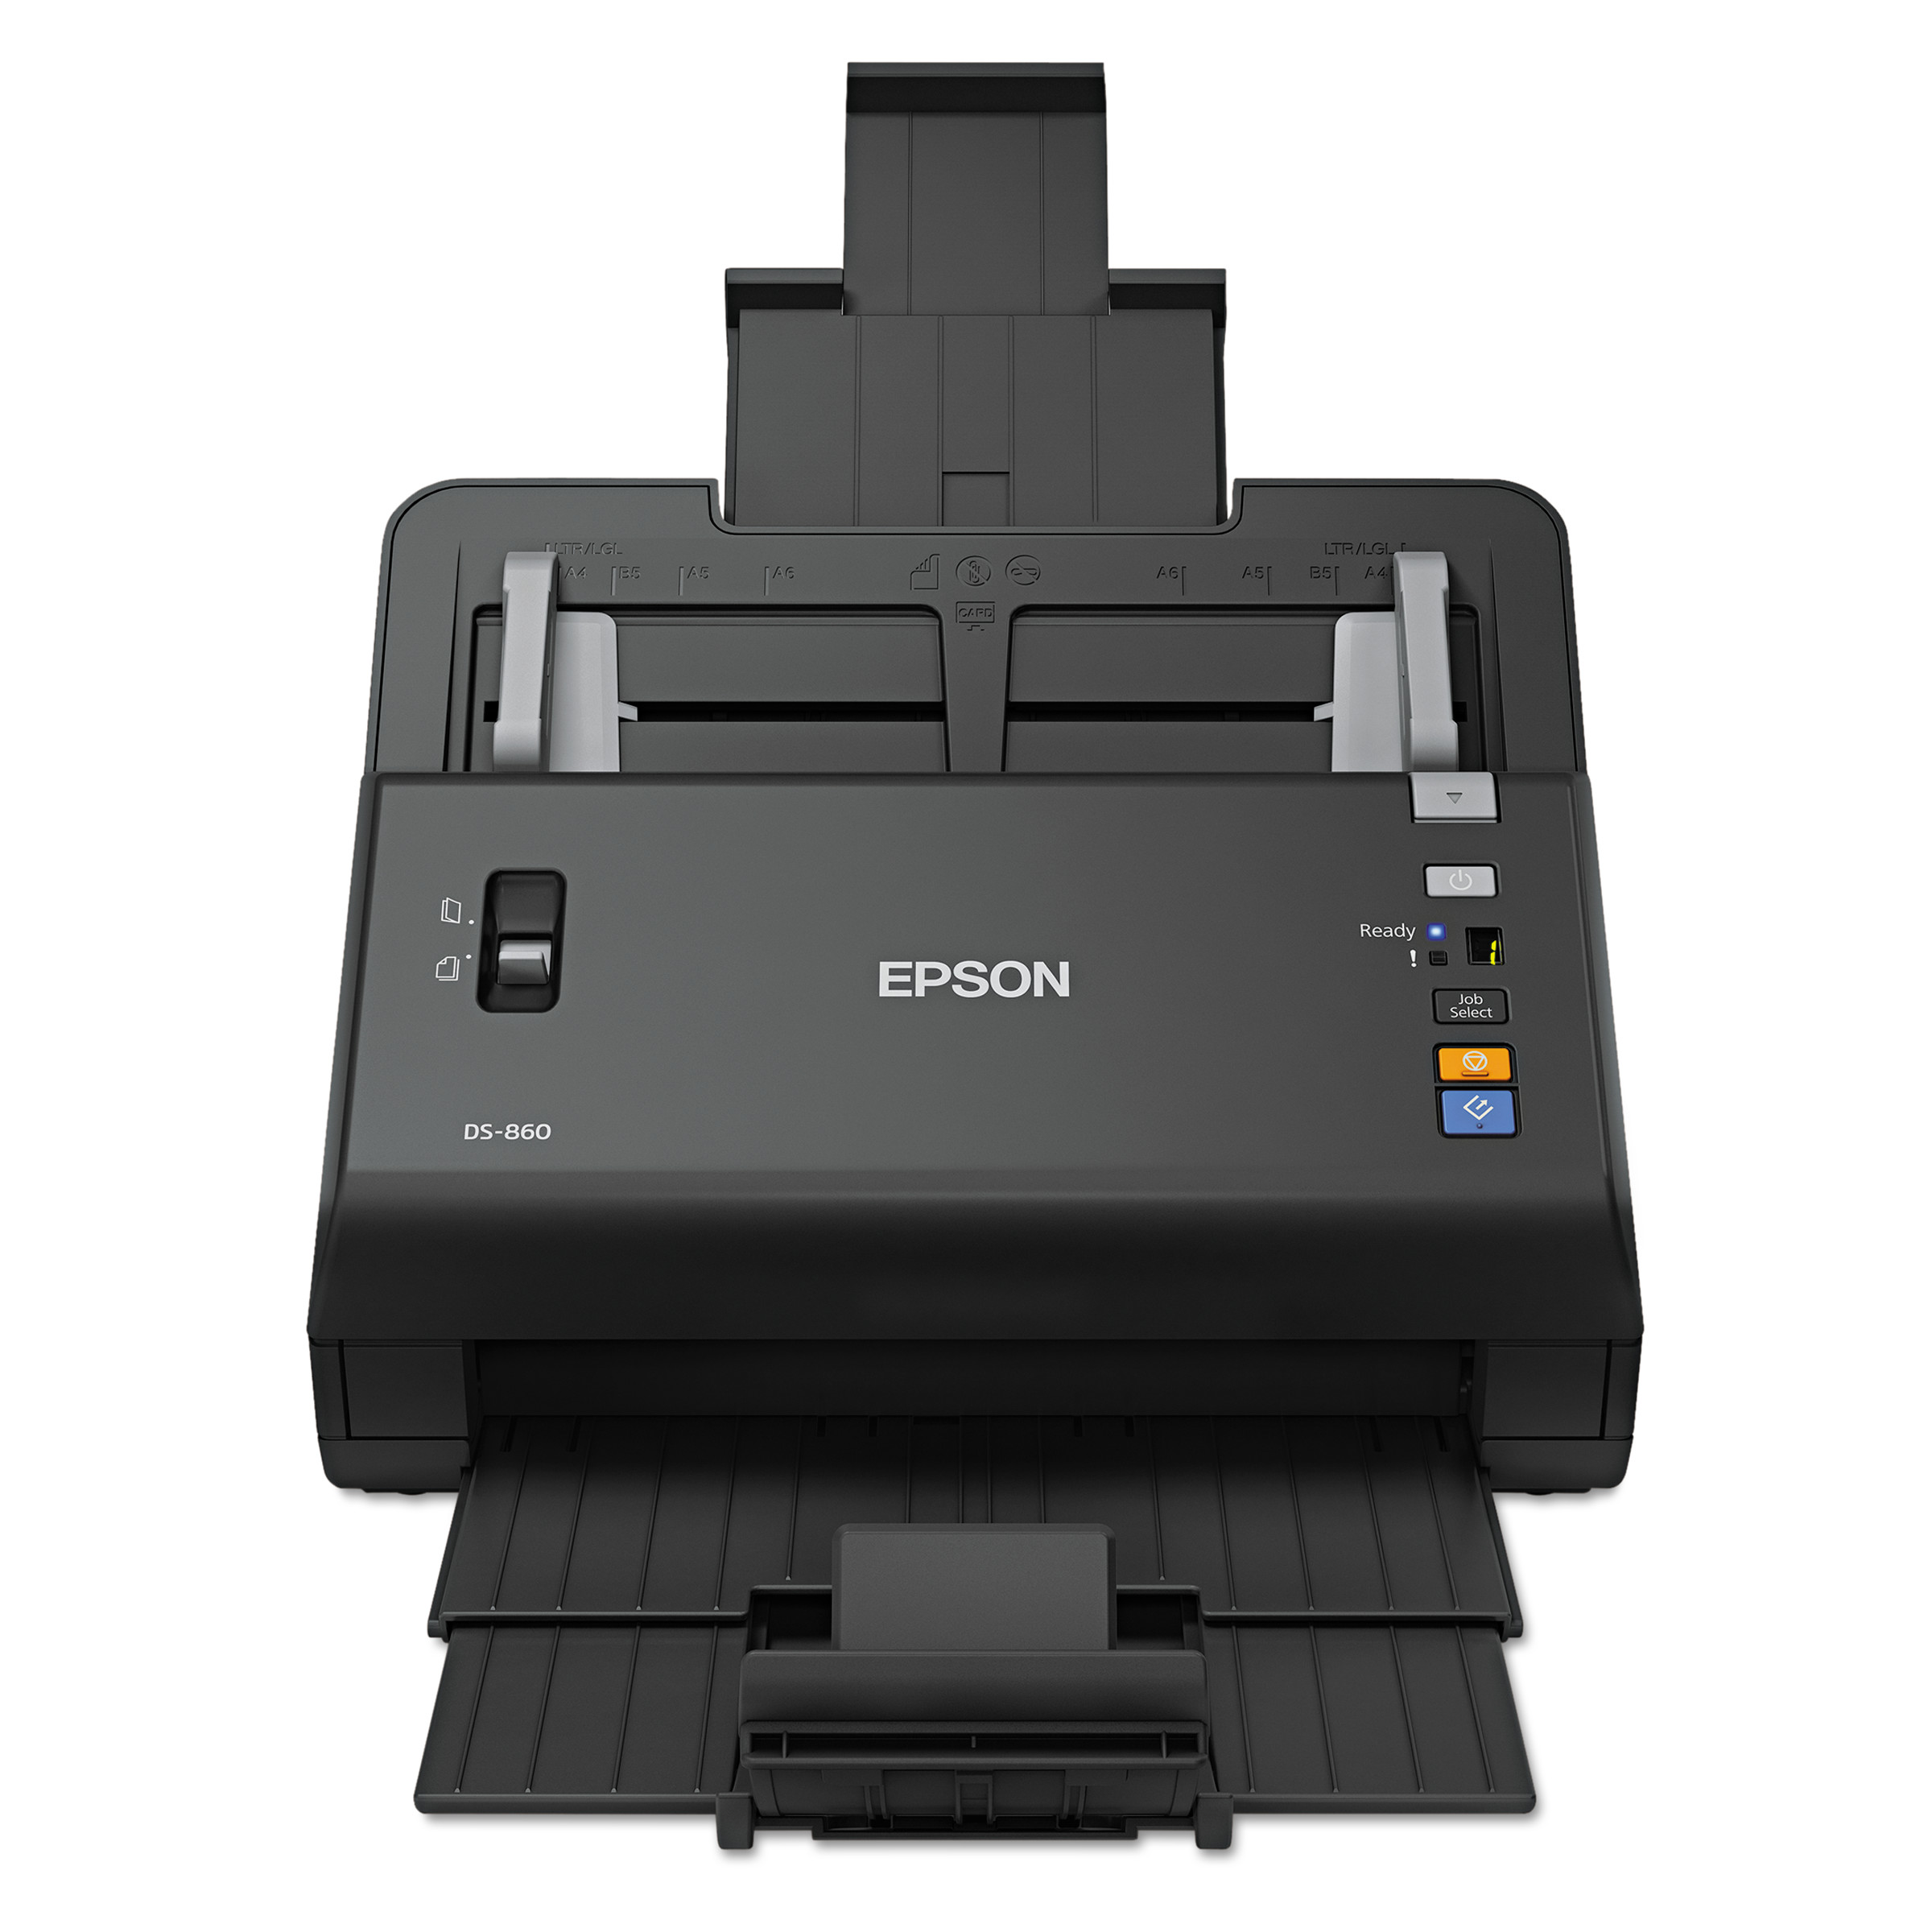 Epson WorkForce DS-860, 600 x 600 dpi, Black